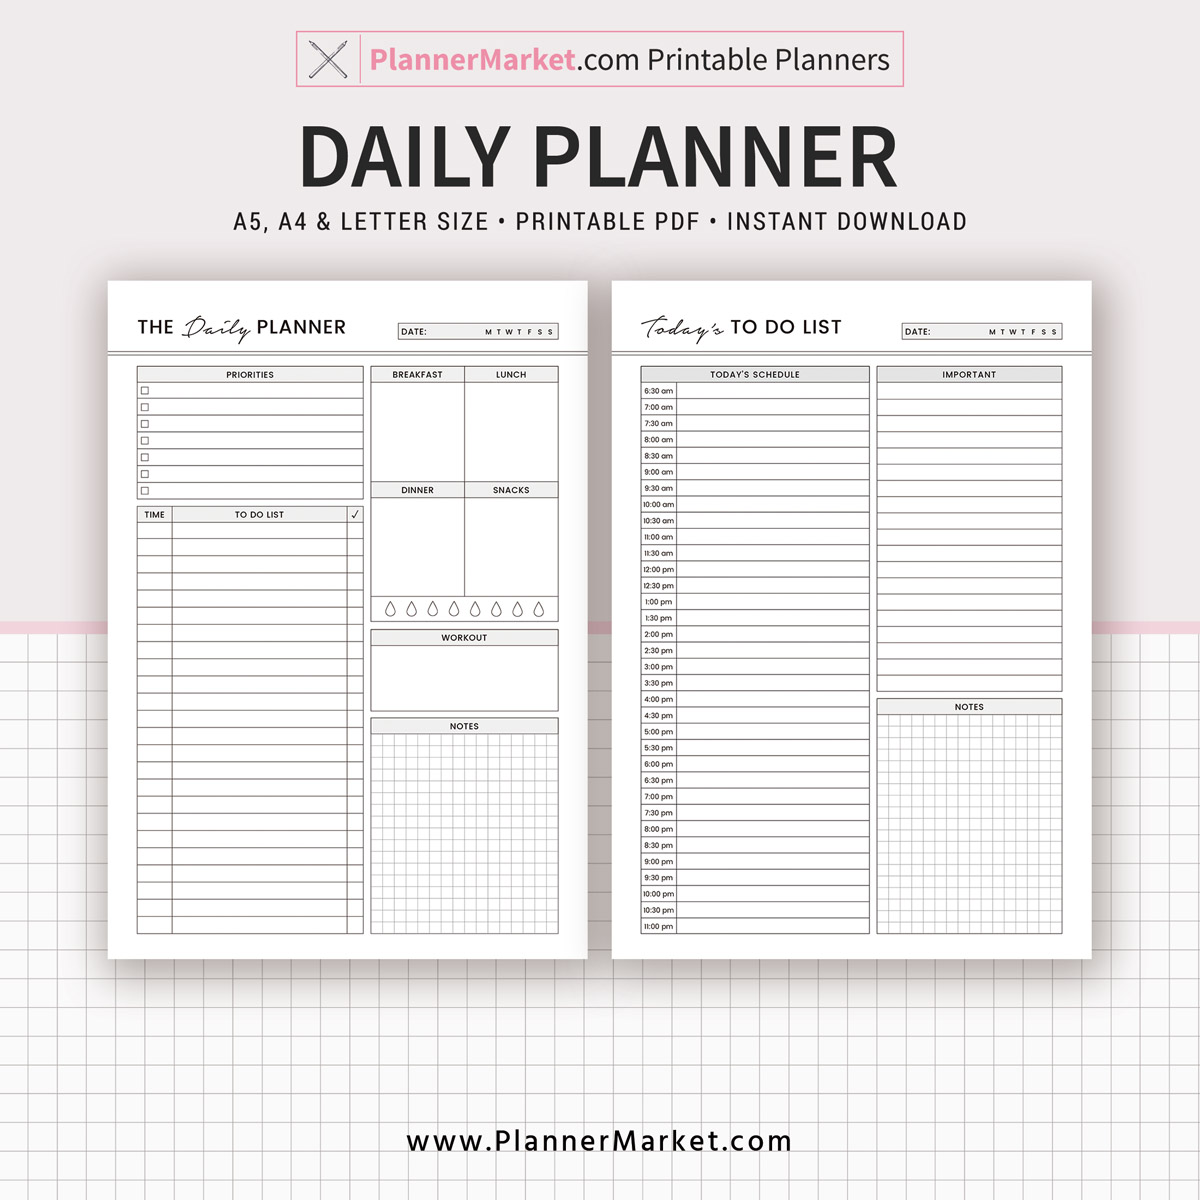 picture regarding Daily Planner Template identify Everyday Planner, Day-to-day Agenda, 2019 Planner, A5, A4, Letter Sizing, Planner Refill, Planner Binder, Quick Down load